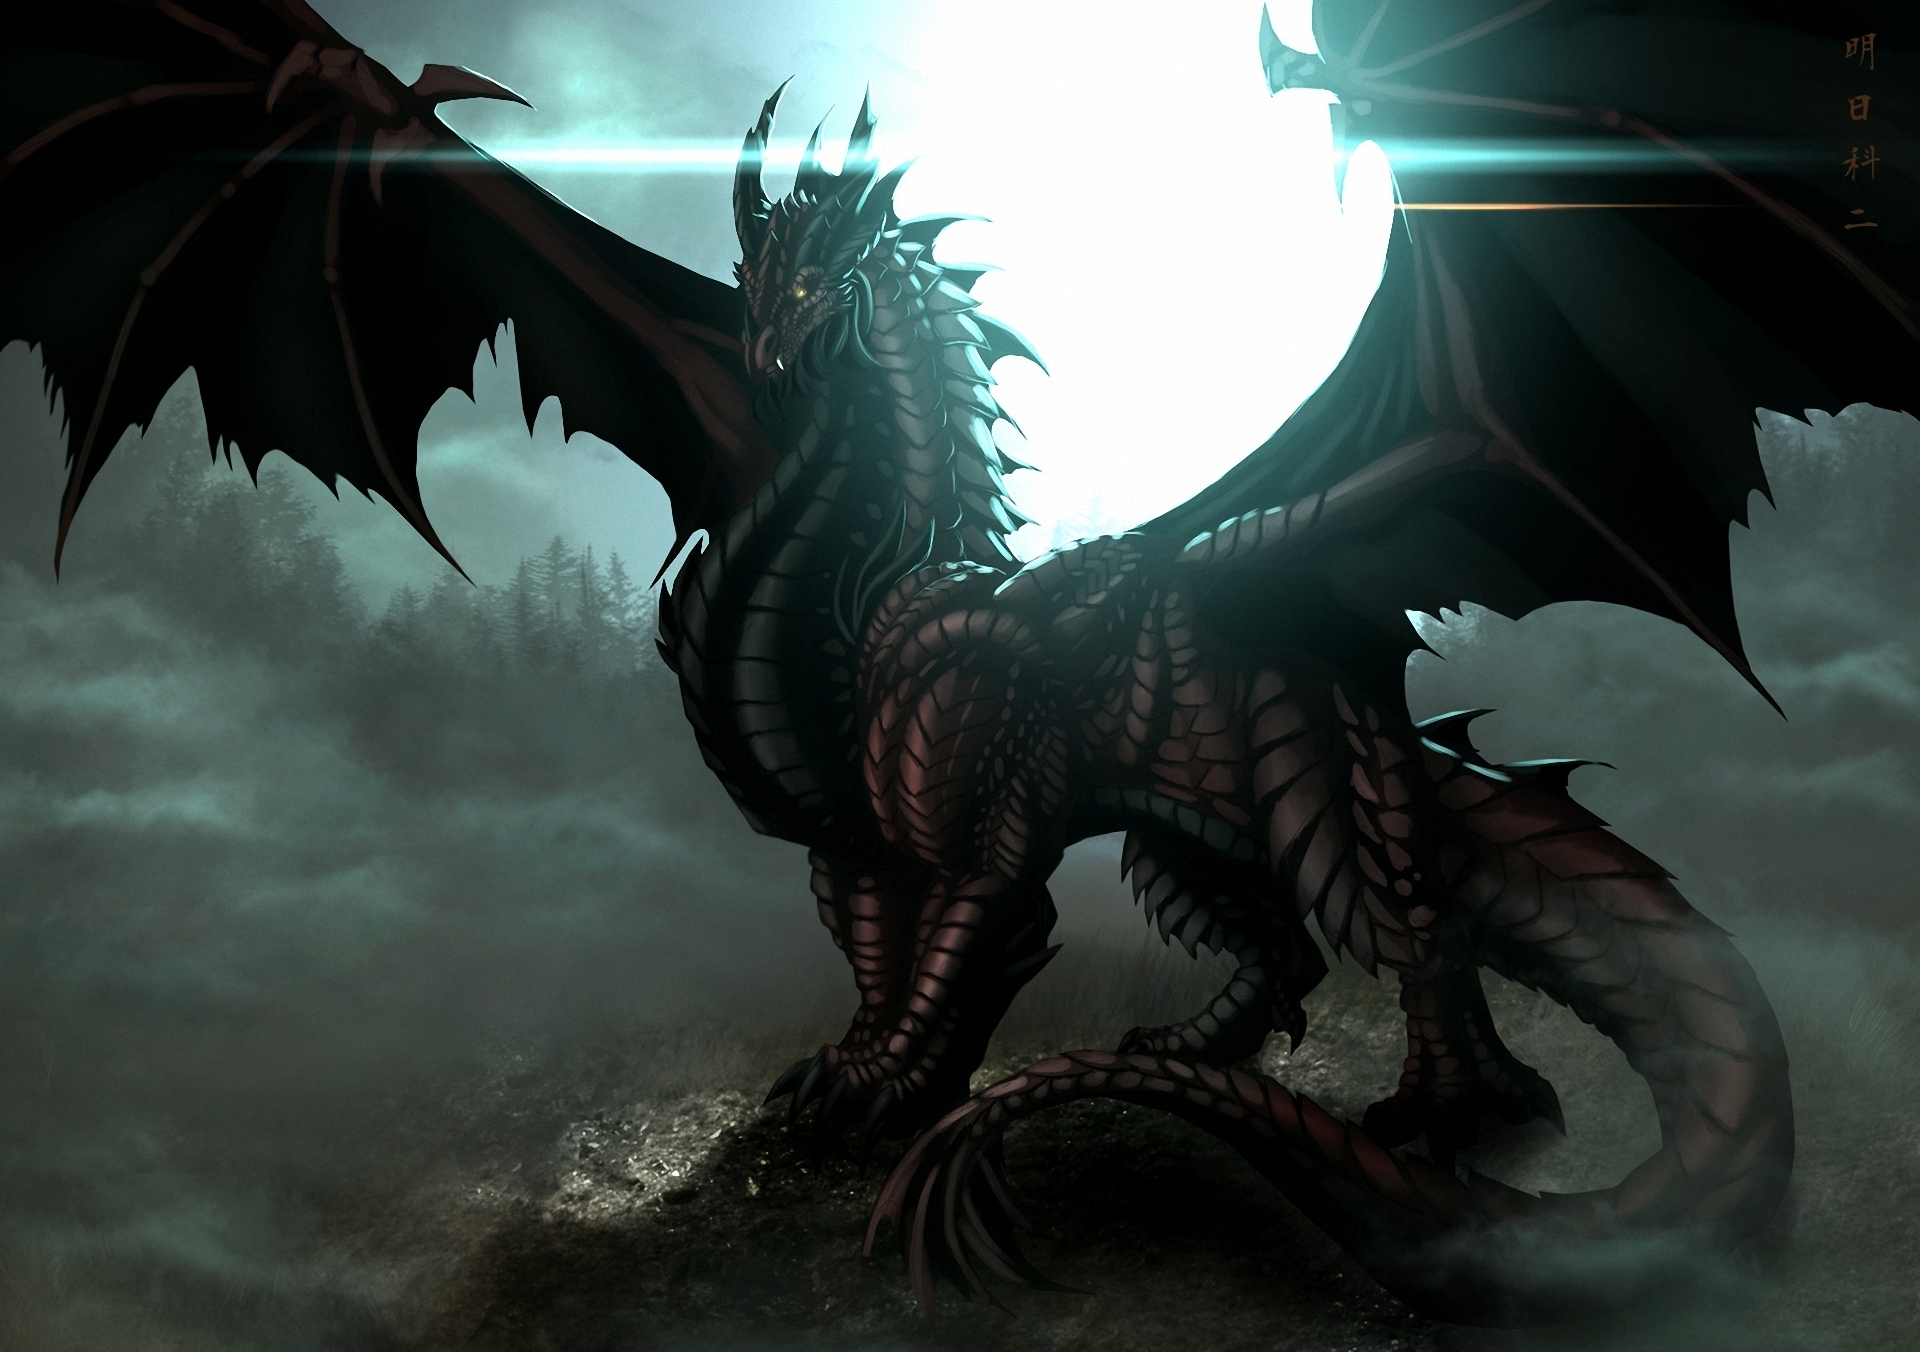 The Black Dragon Full HD Wallpaper And Background Image